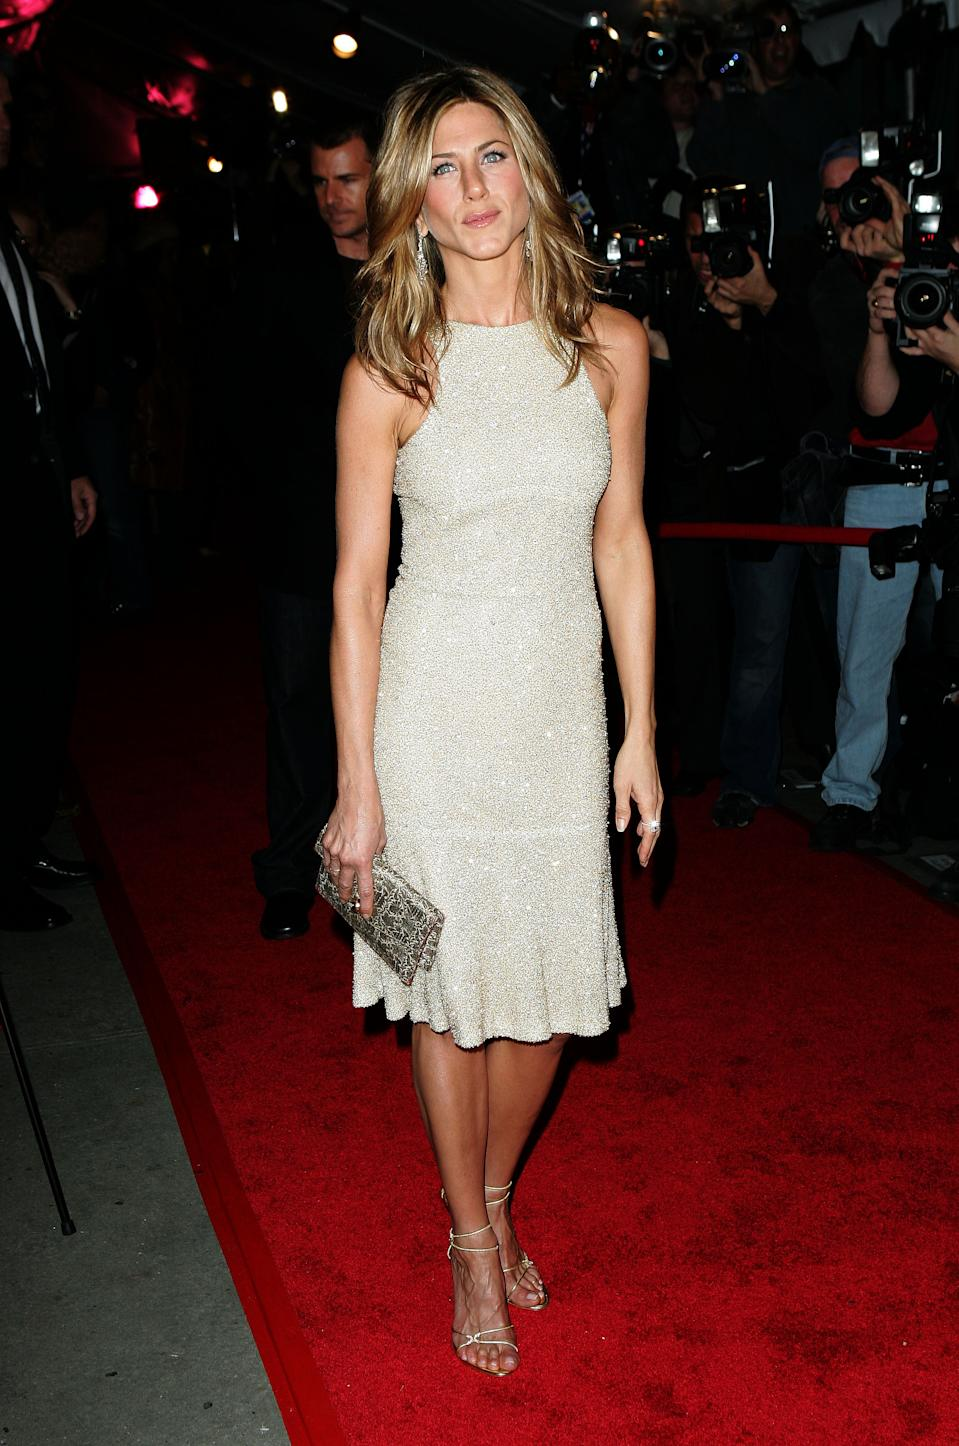 "Aniston shimmered in a sparkling cream and gold dress that showed off her tanned physique at the 2005 premiere of her film, ""Derailed."" (Photo by James Devaney/WireImage)"